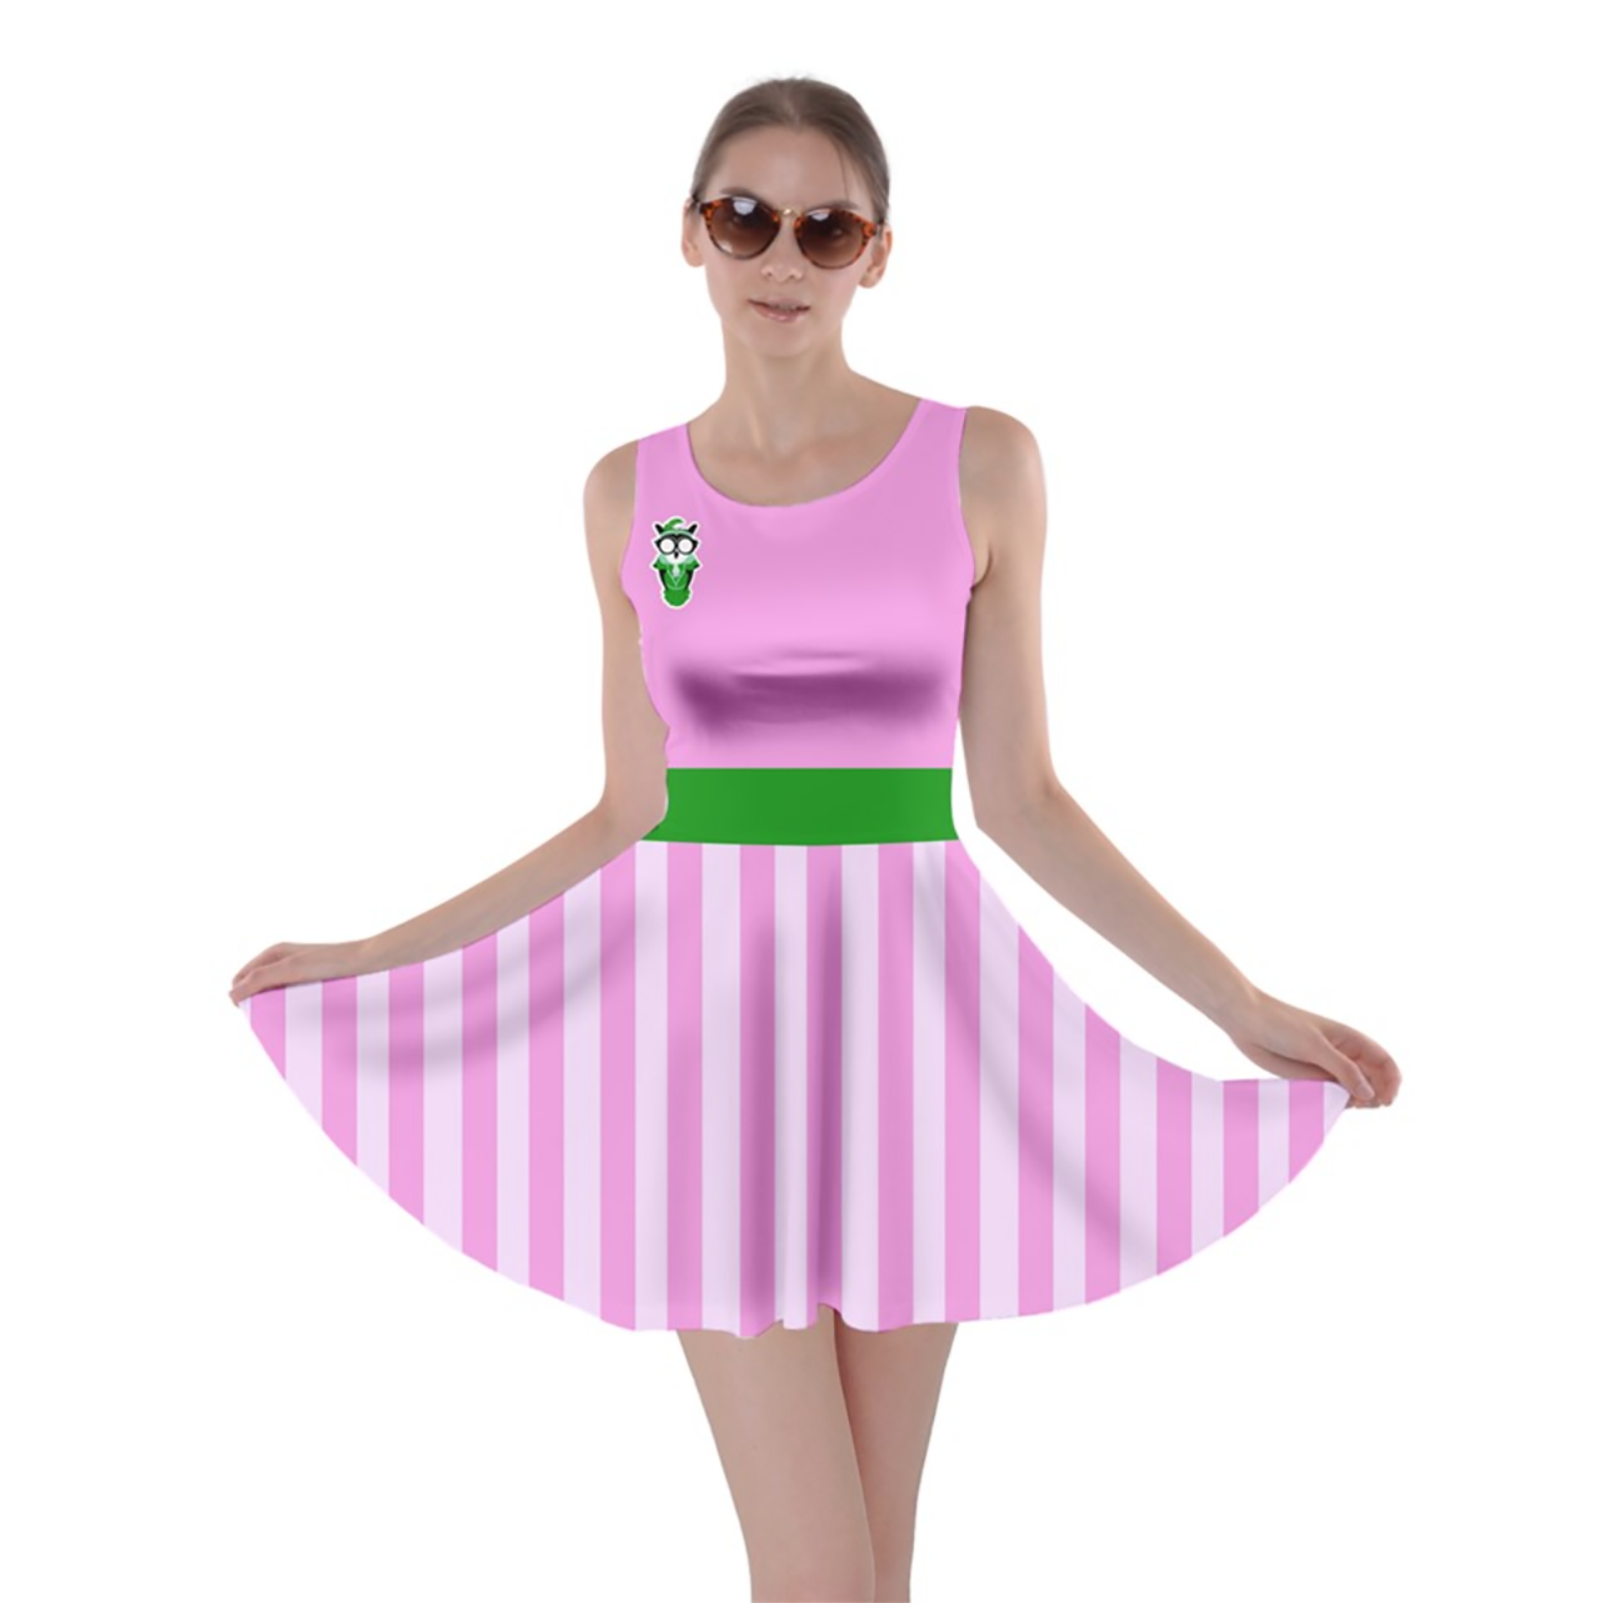 Candy Store Owl Skater Dress (pink striped pattern)